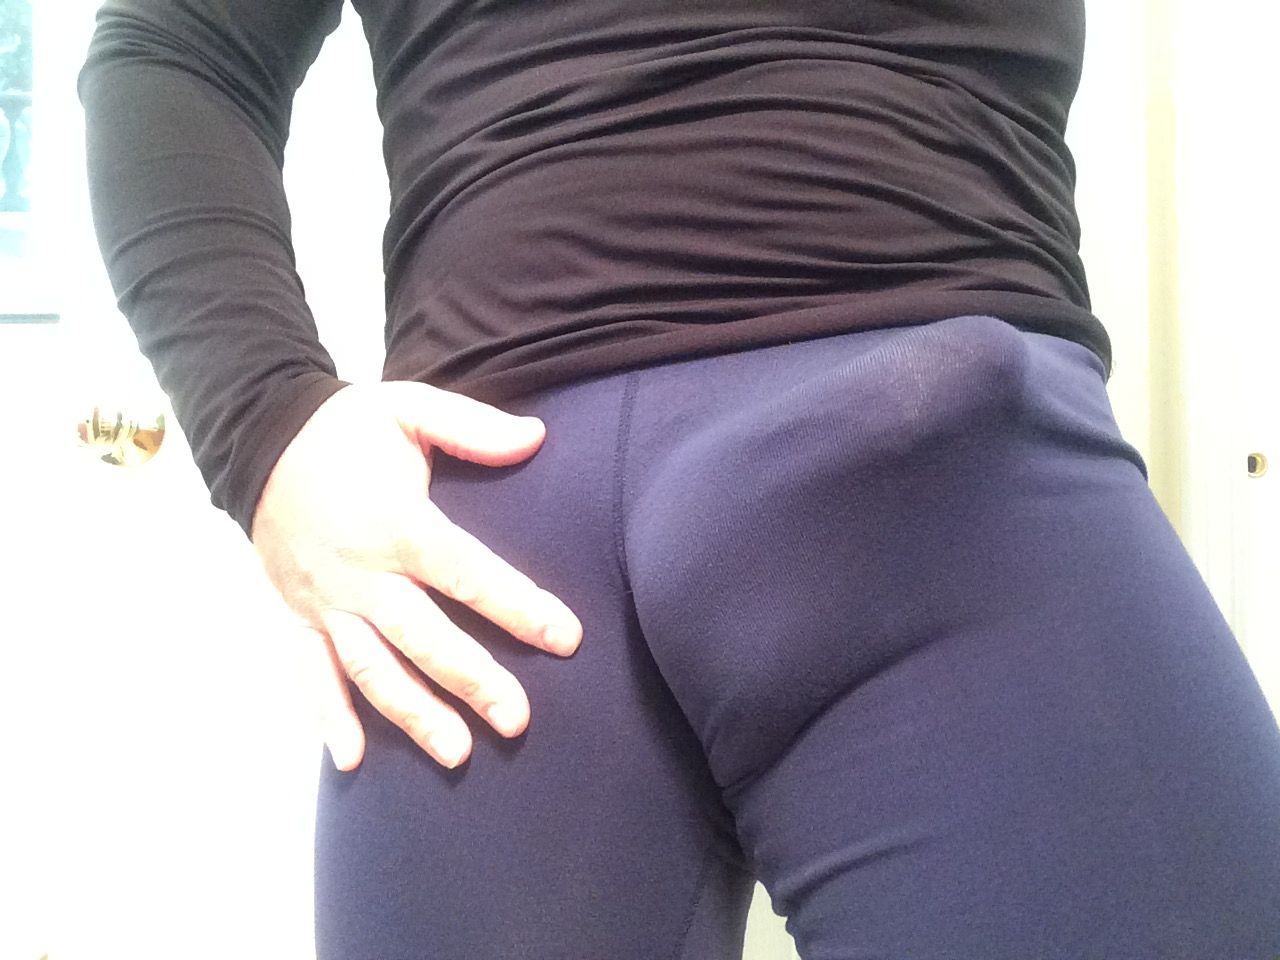 I could see his cock in his spandex #7